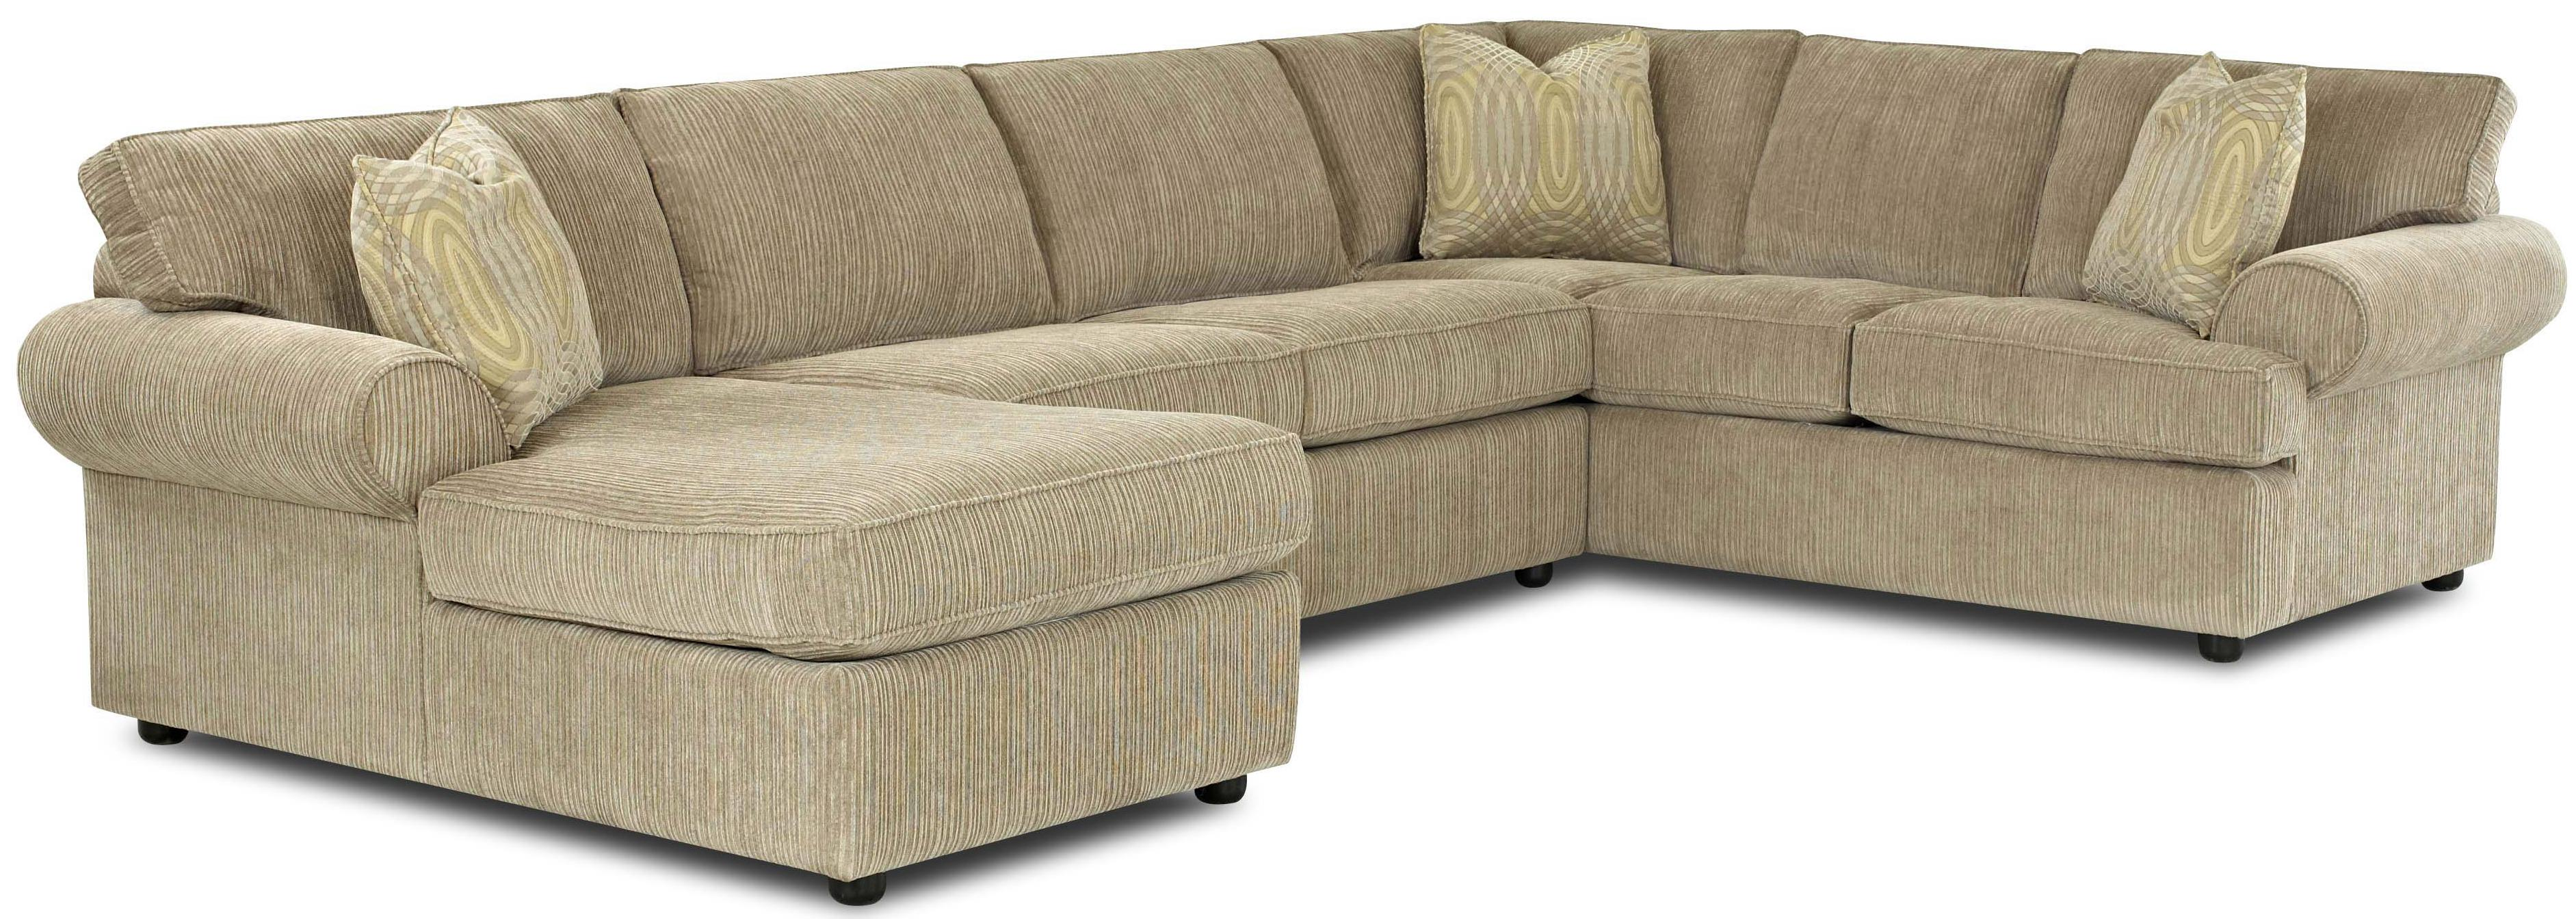 Transitional Sectional Sofa with Rolled Arms and Left Chaise by